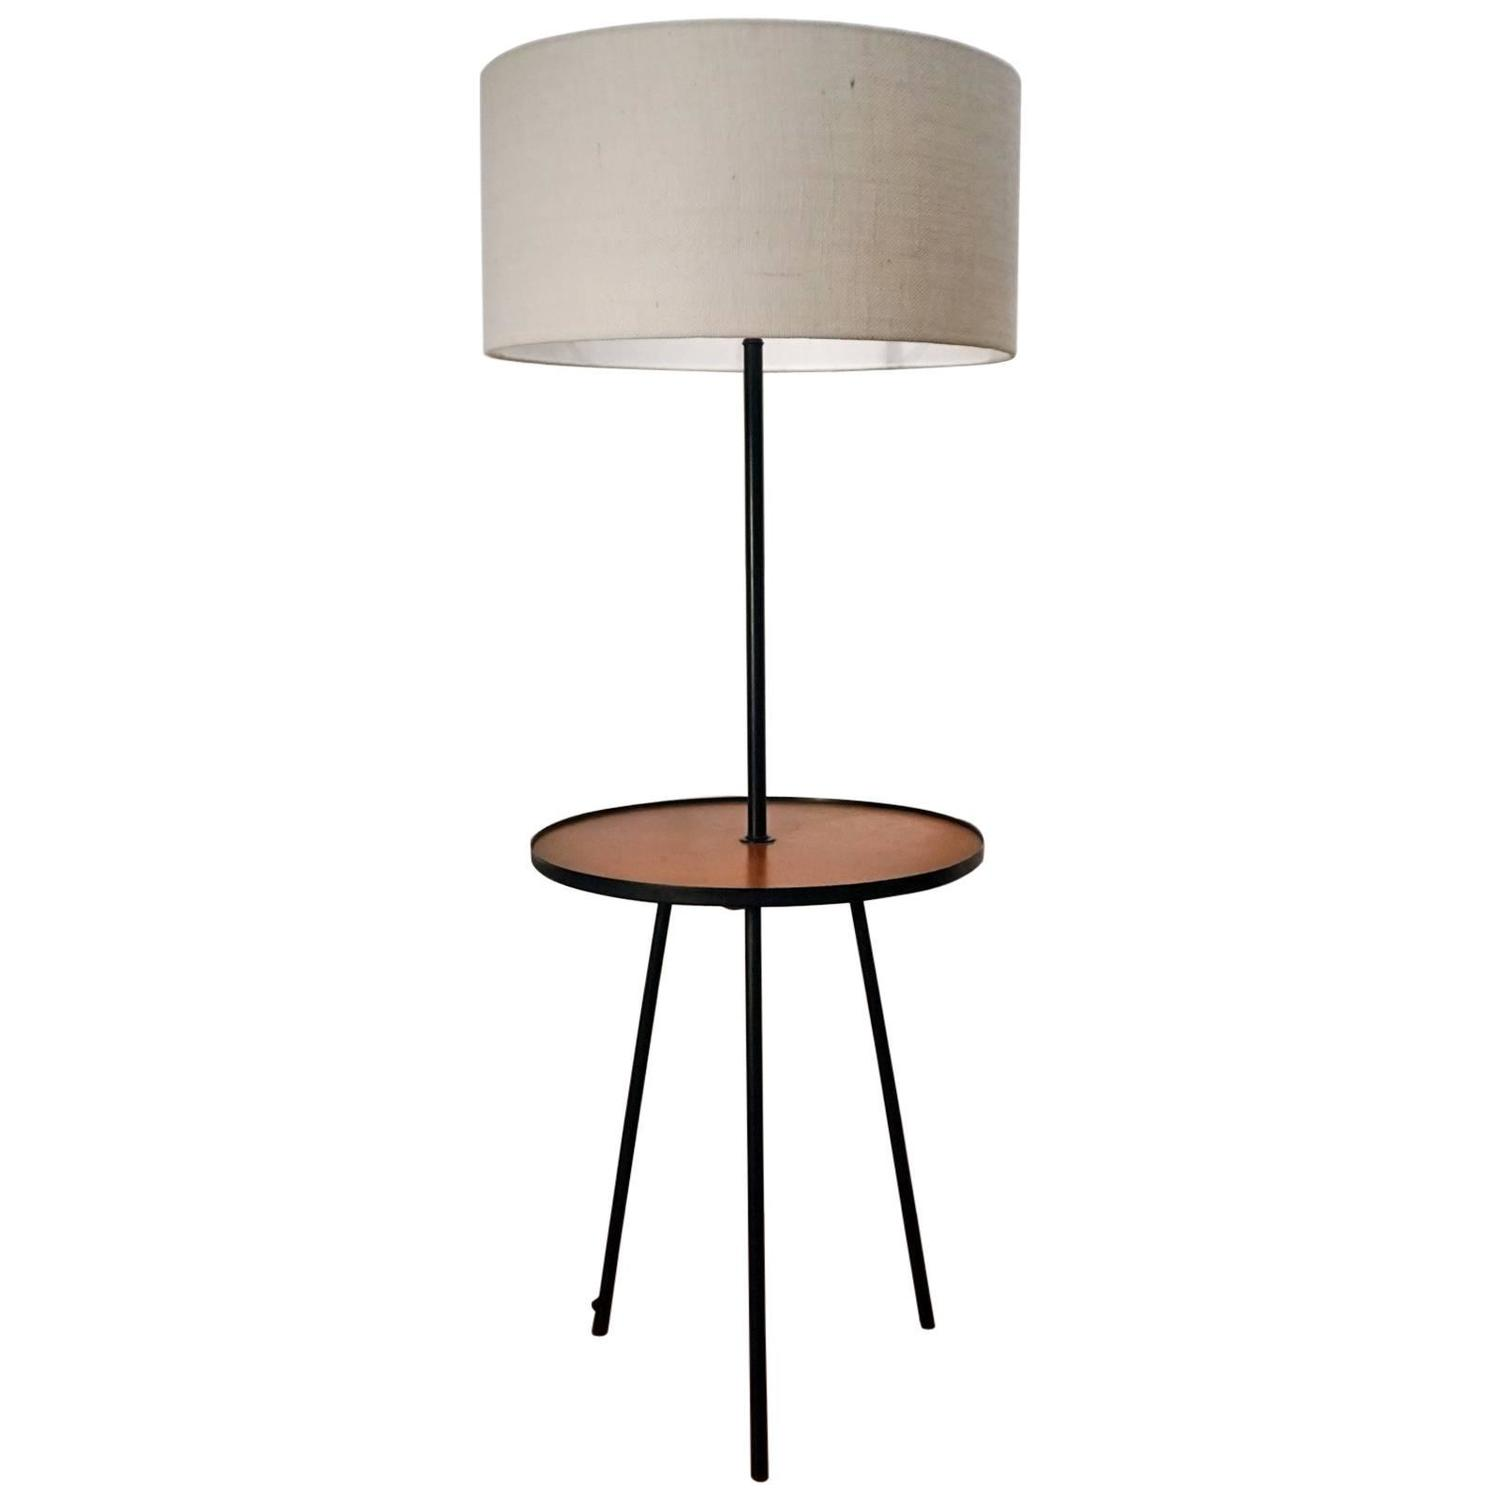 Gerald thurston tripod table and floor lamp for lightolier for Floor lamp with table